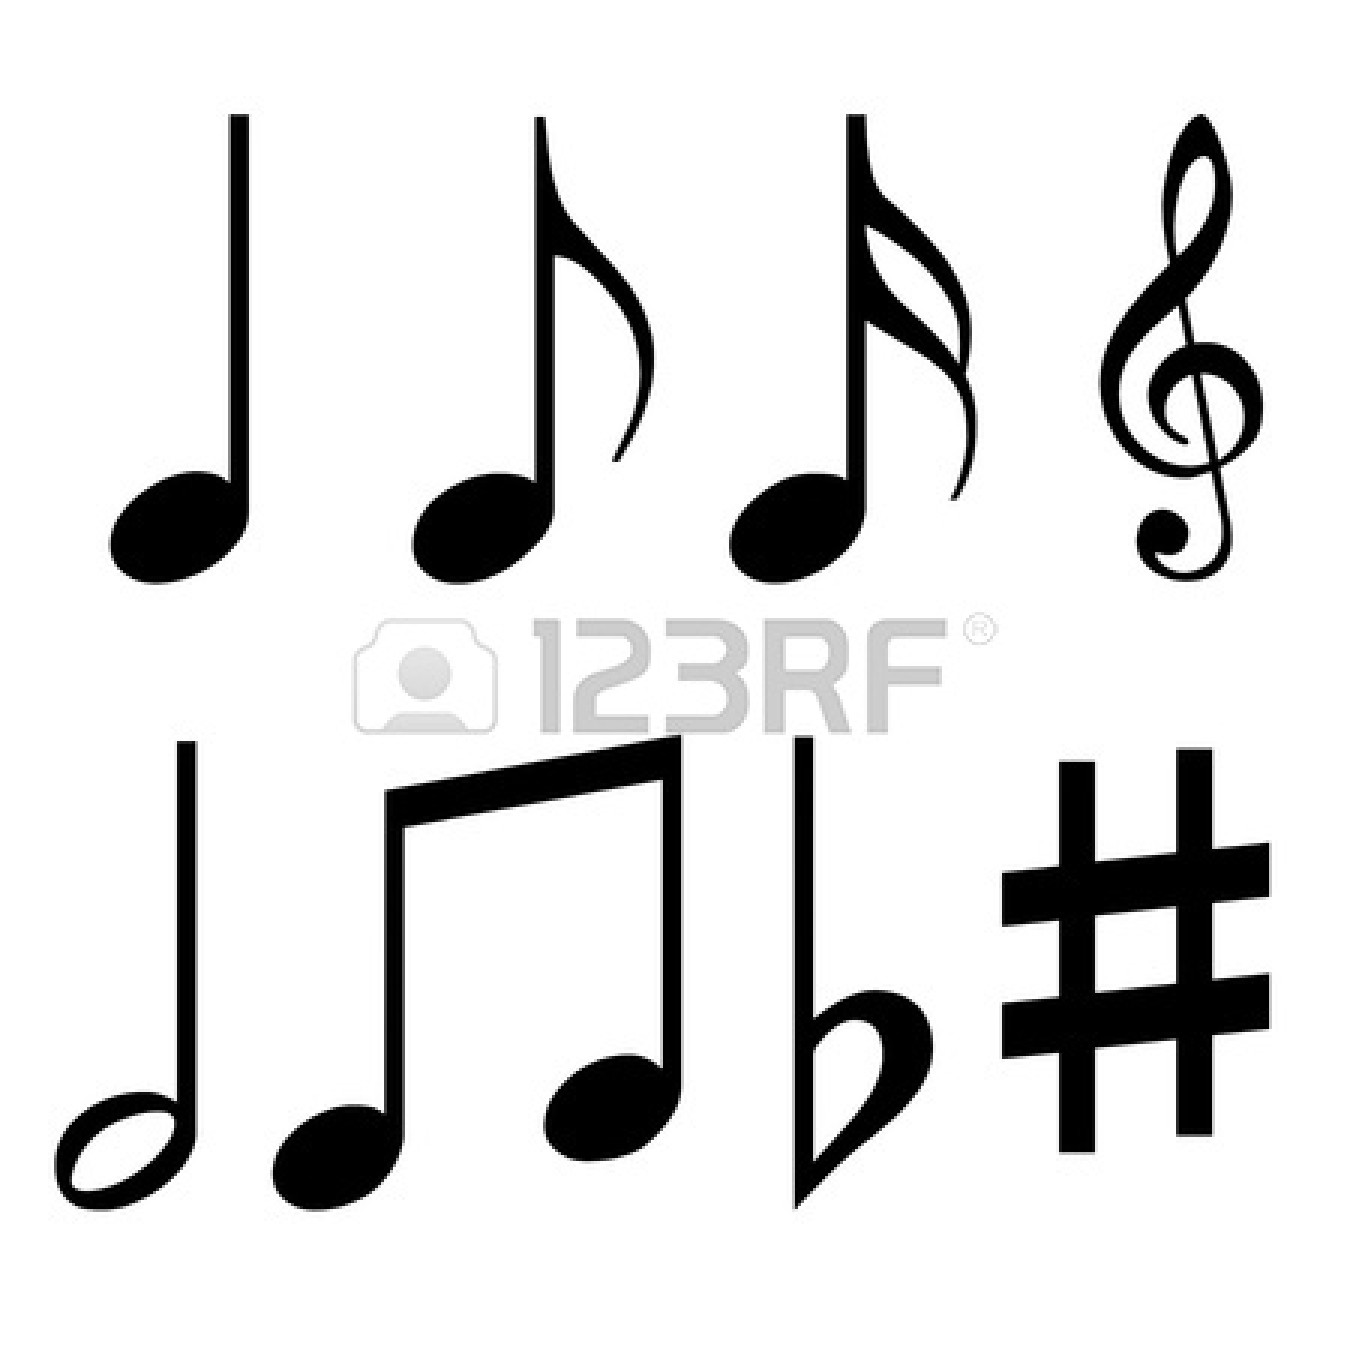 Music notes symbols names clipart panda free clipart images black20quarter20notes biocorpaavc Image collections